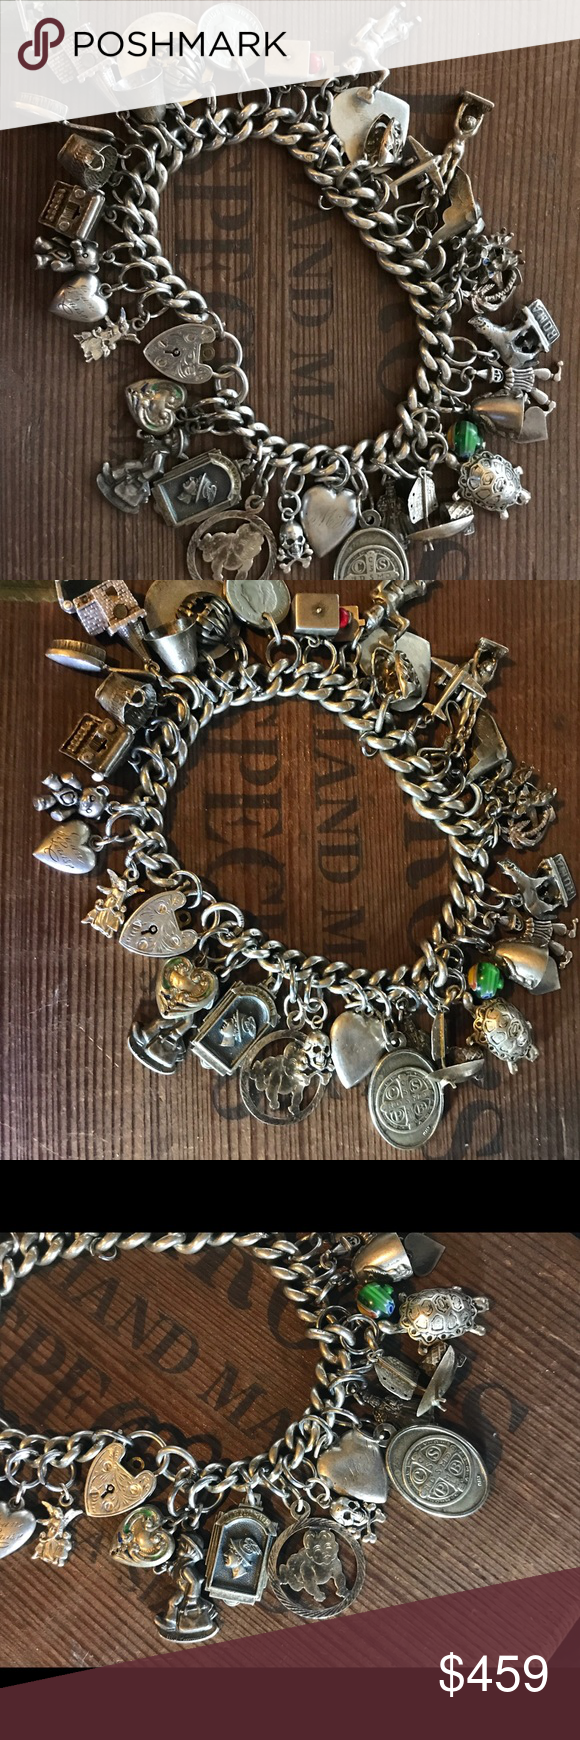 Old English Charm: Antique English Sterling Silver Charm Bracelet Antique